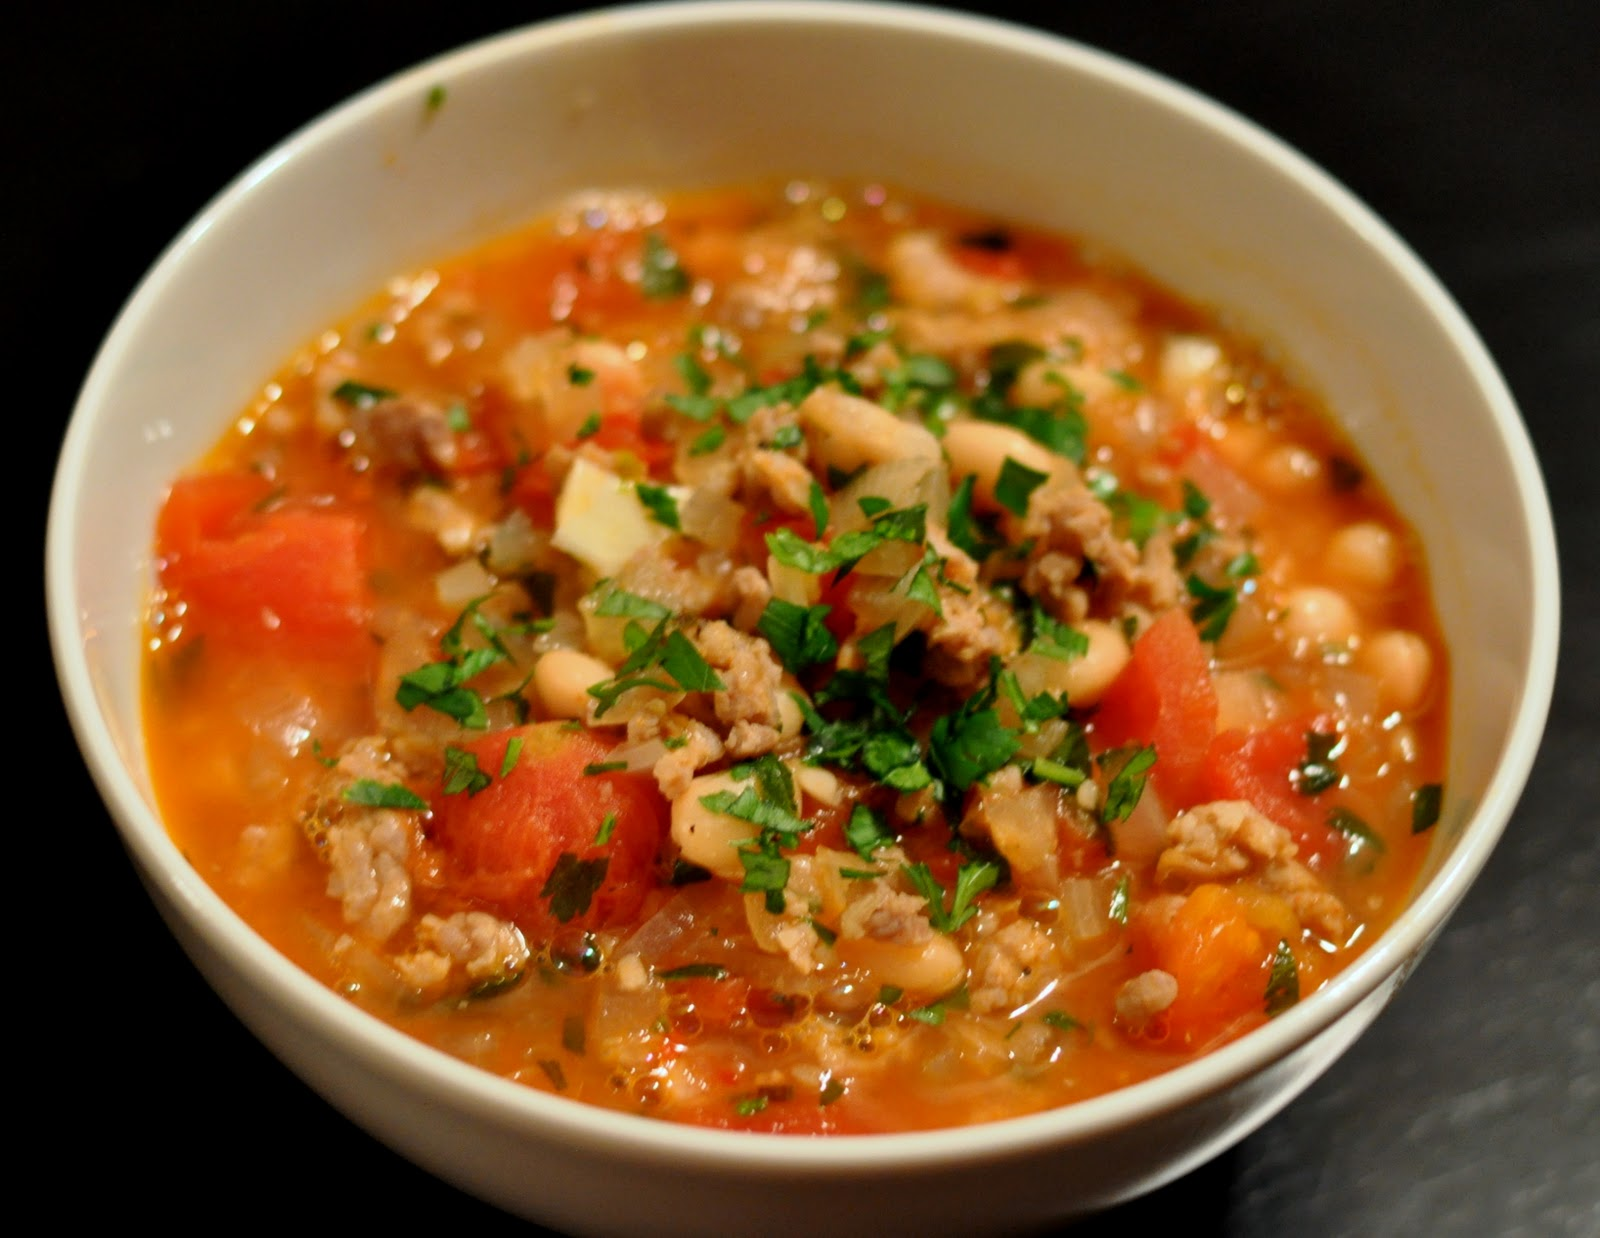 Dandy Dishes: Fagioli con Salsicce (Beans with Sausage) Soup